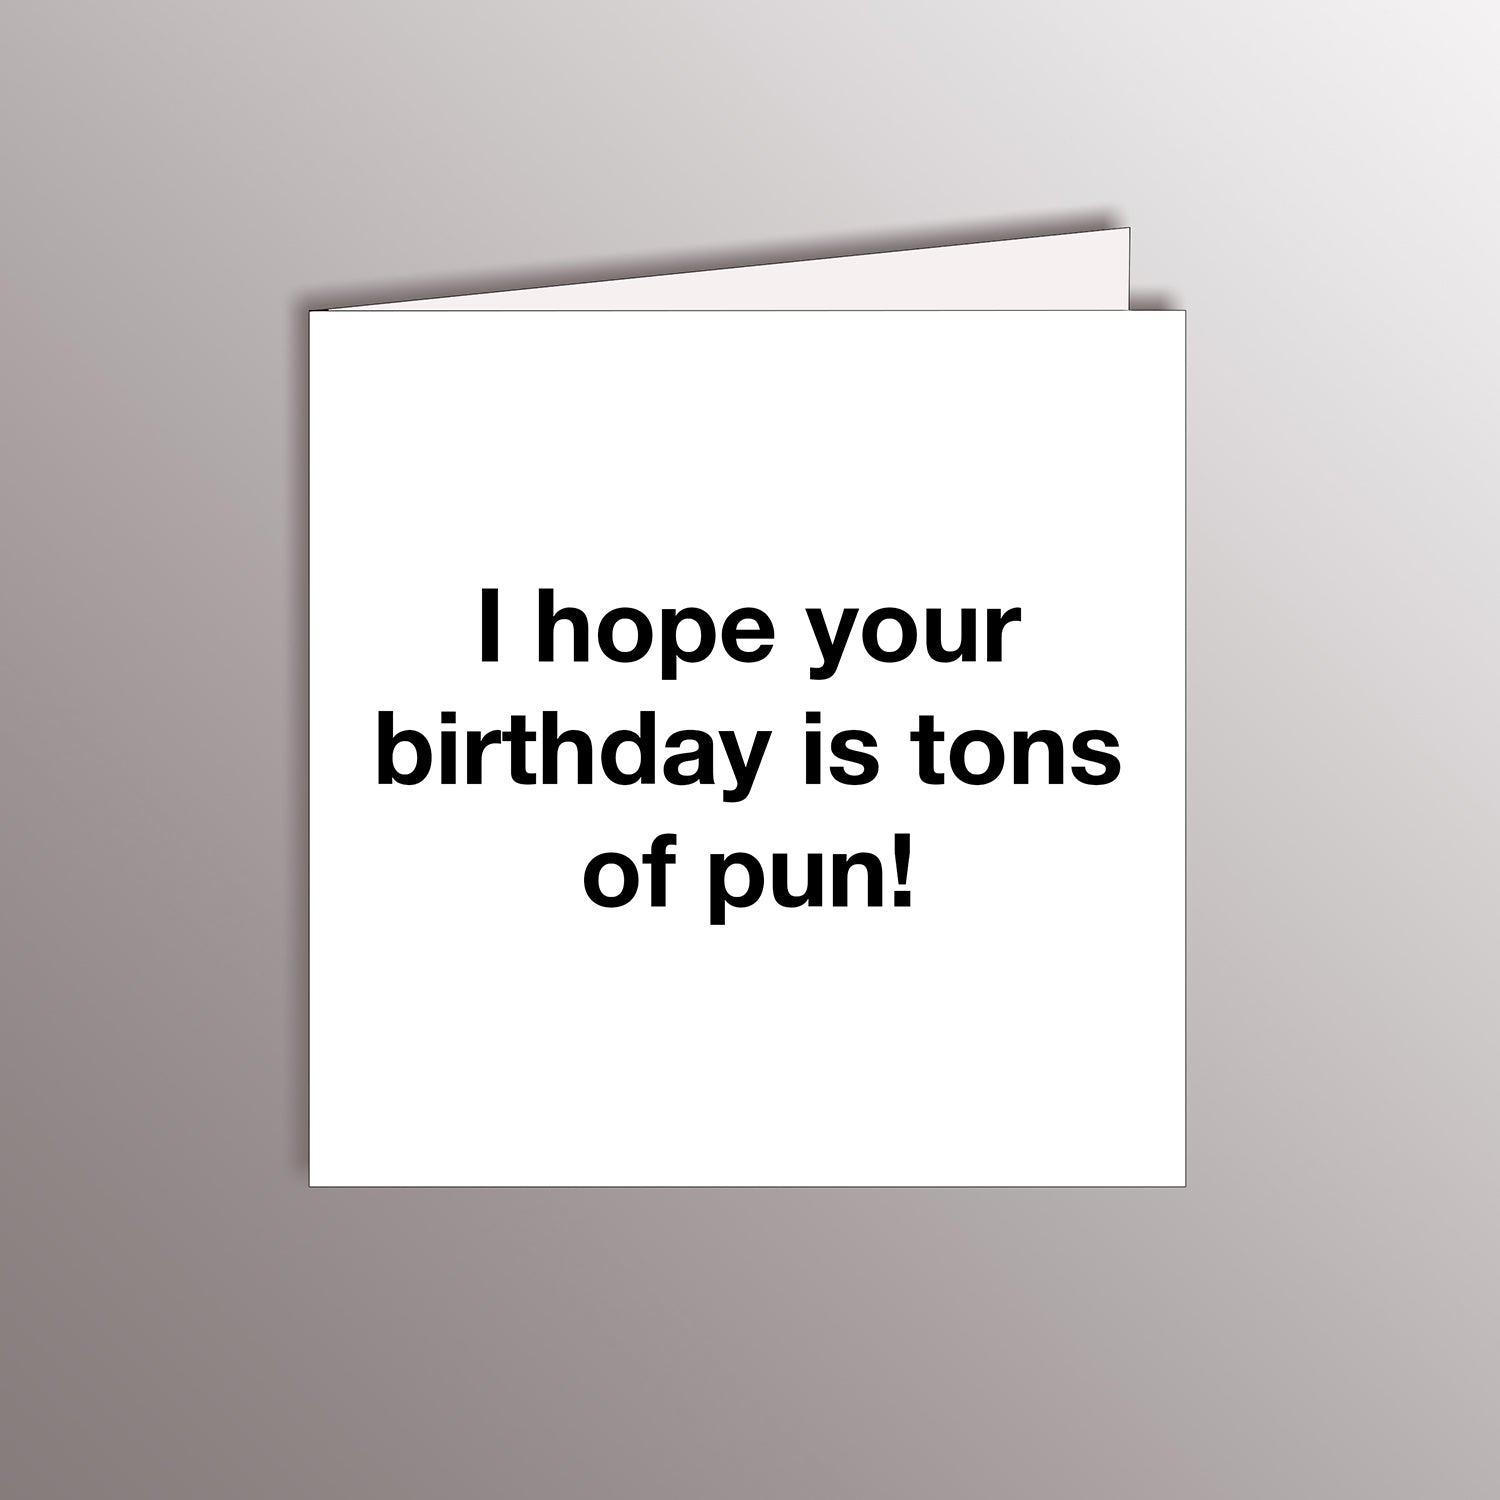 I hope your birthday is tons of pun